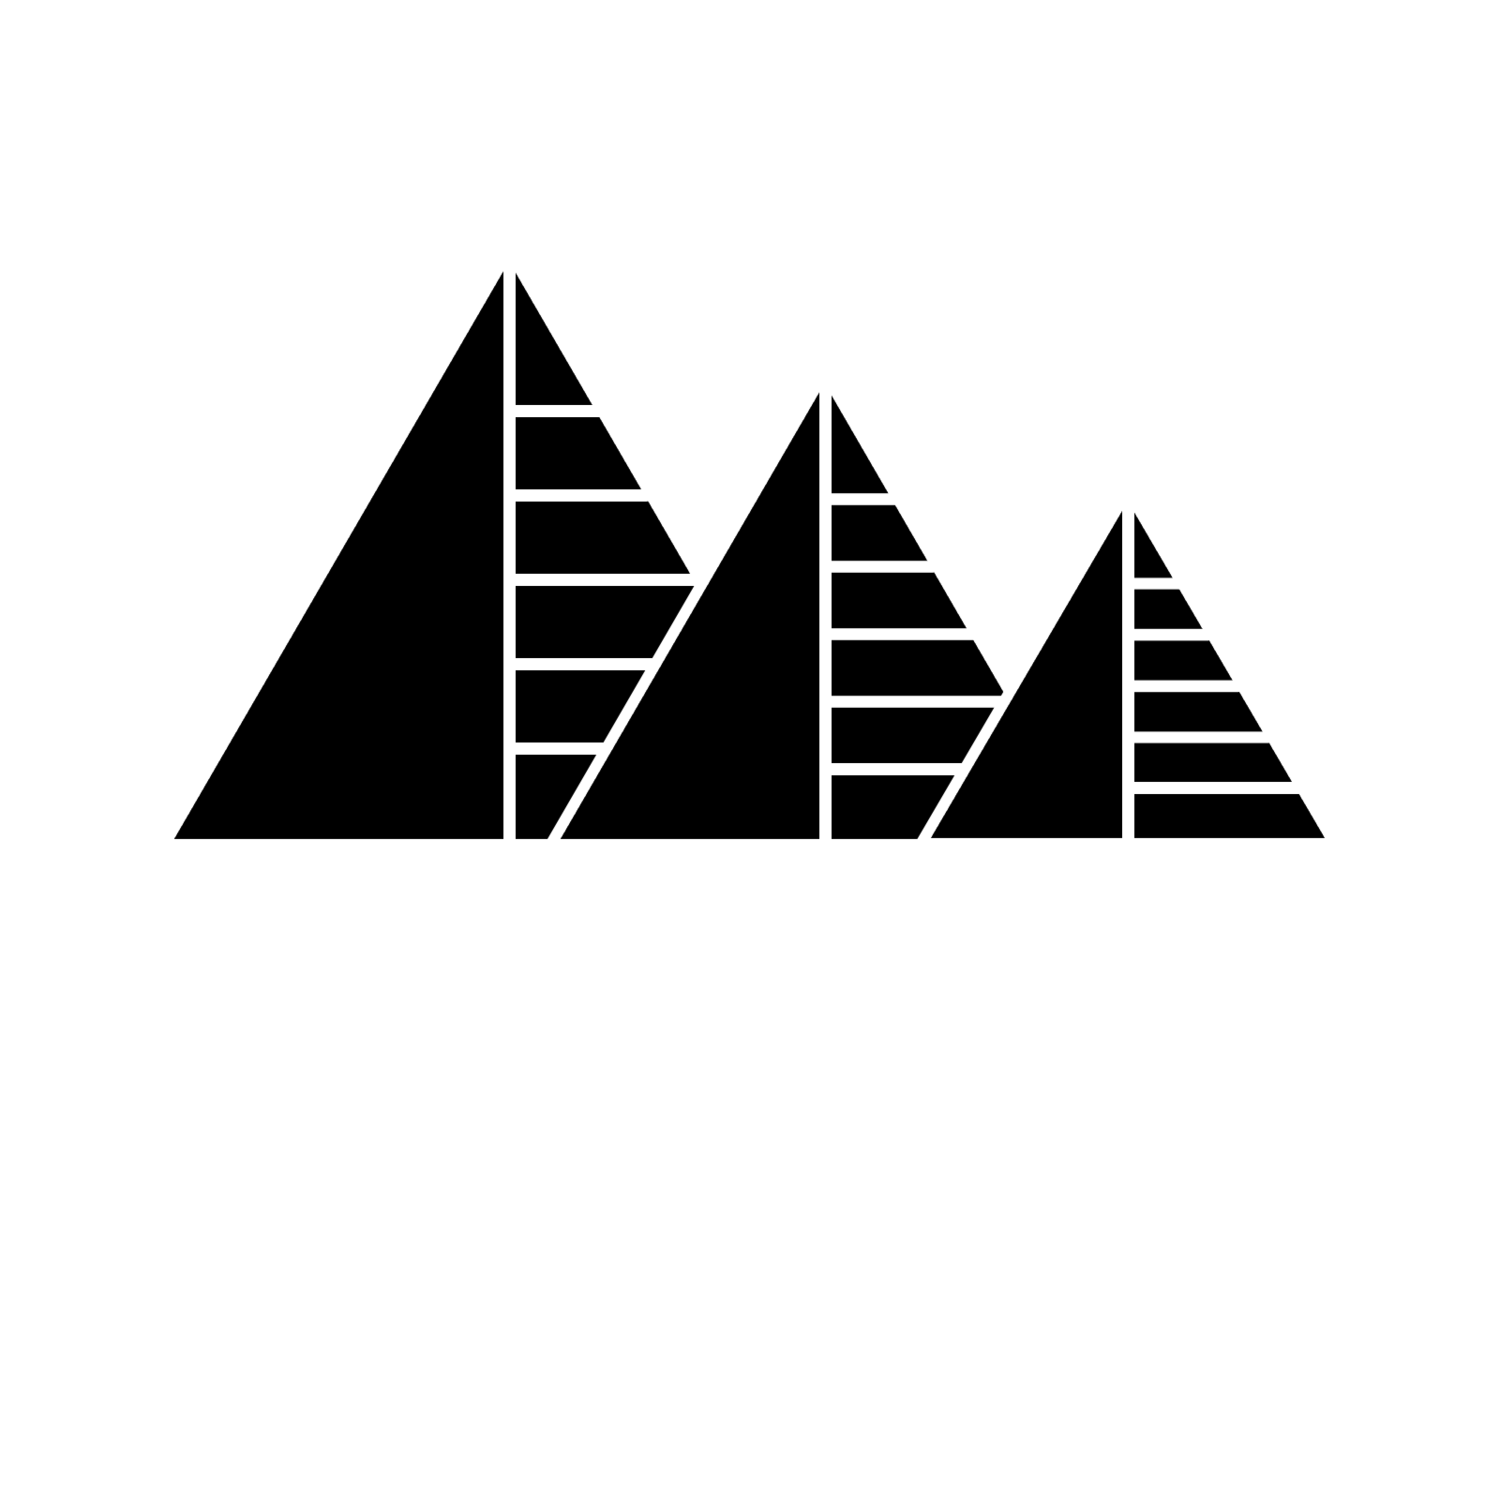 Together We Can Rule the Galaxy